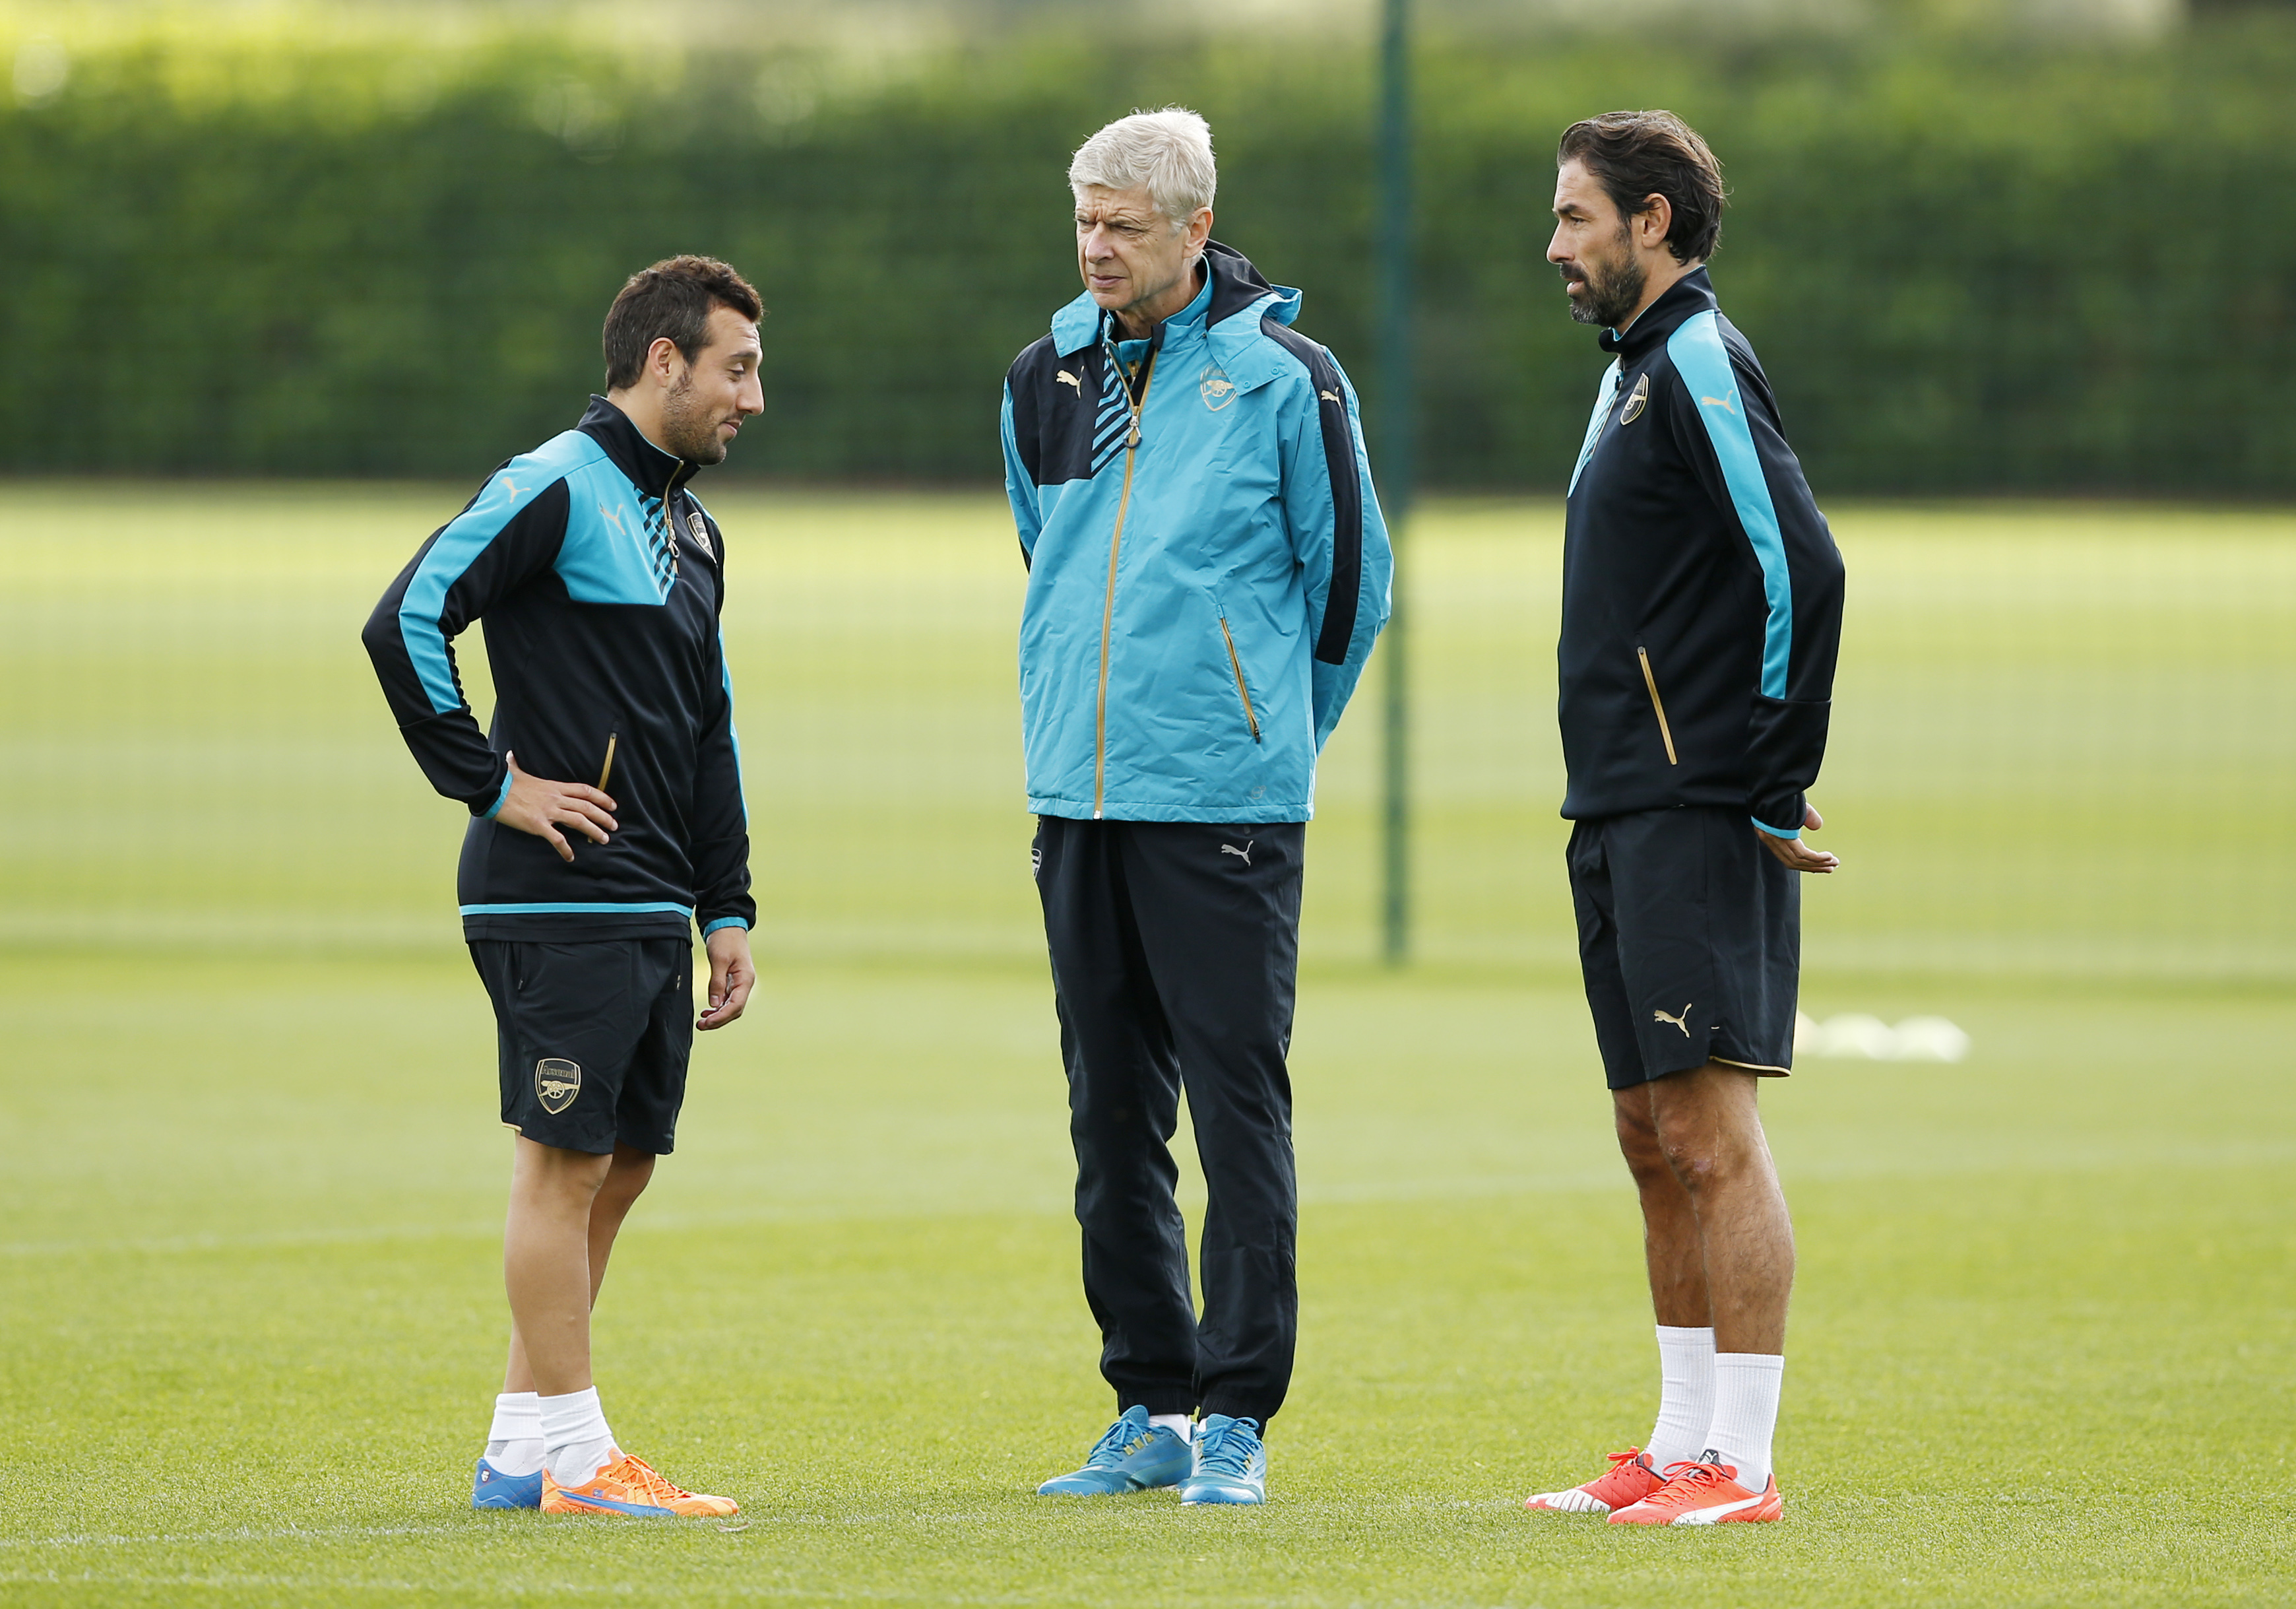 Football - Arsenal Training - Arsenal Training Ground - 28/9/15nArsenal manager Arsene Wenger with Santi Cazorla and  former player Robert Pires during trainingnAction Images via Reuters / John SibleynLivepicnEDITORIAL USE ONLY.